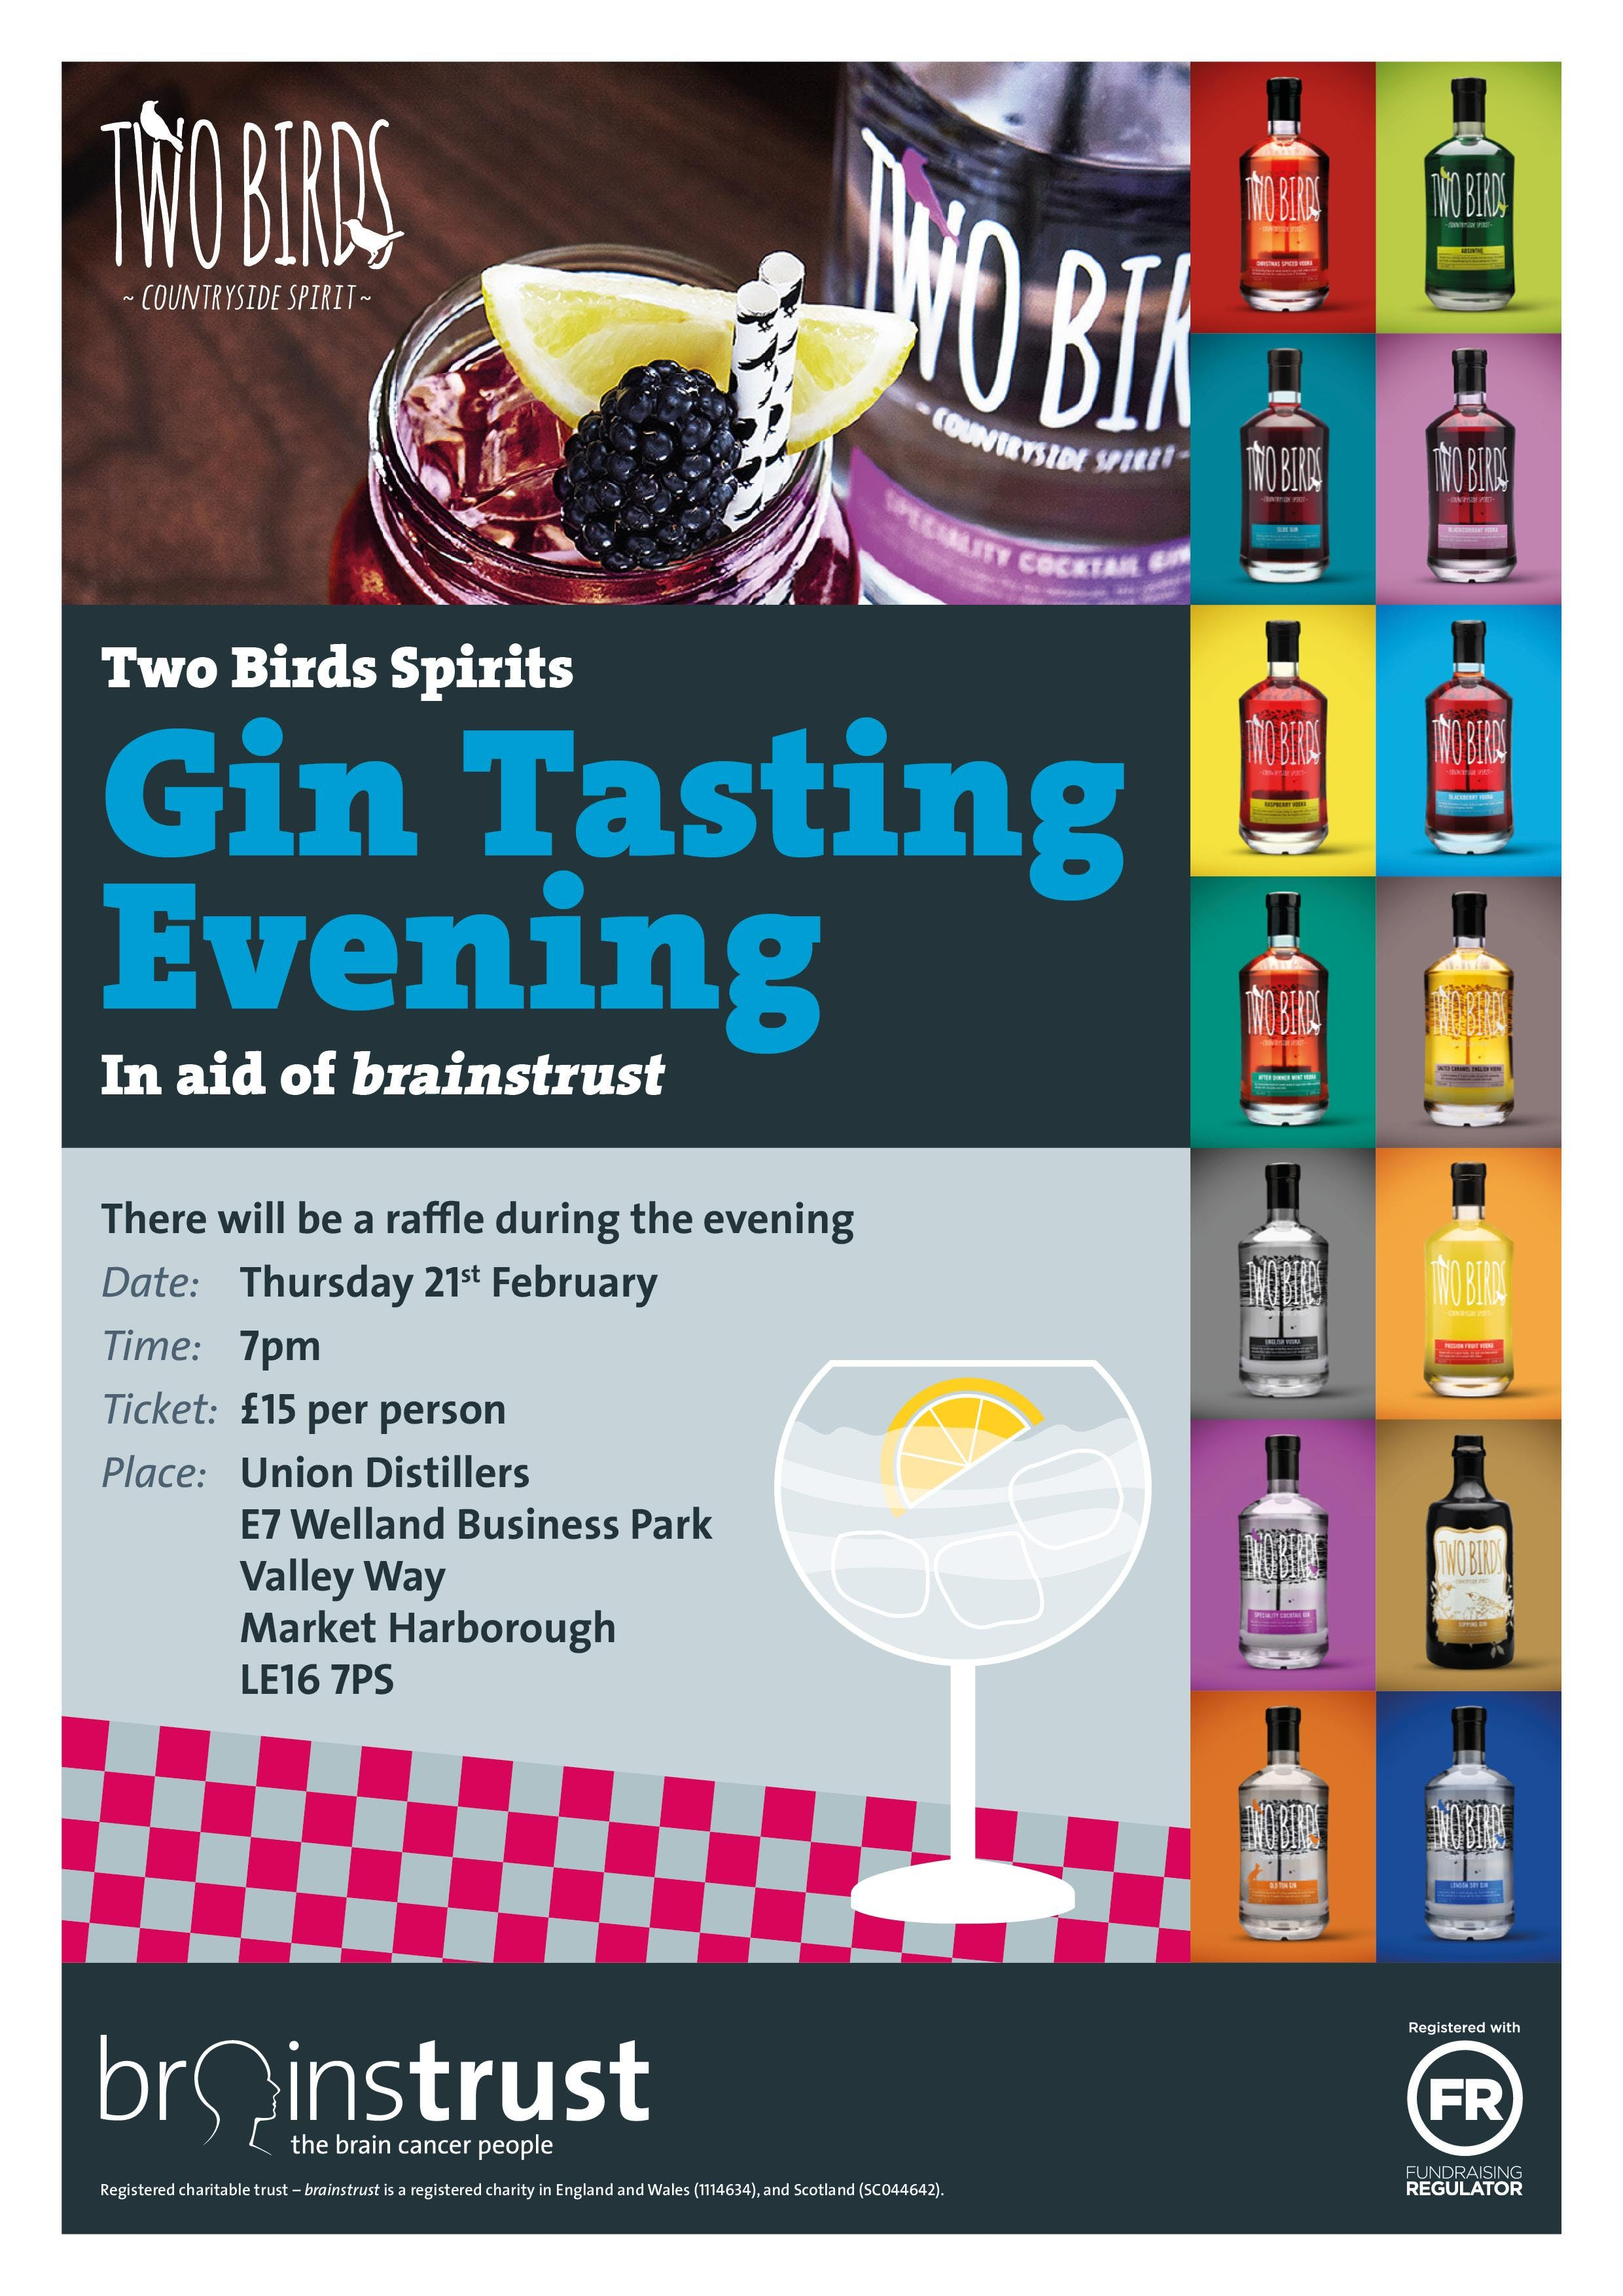 Two Birds Spirits Gin Tasting Evening - in ai